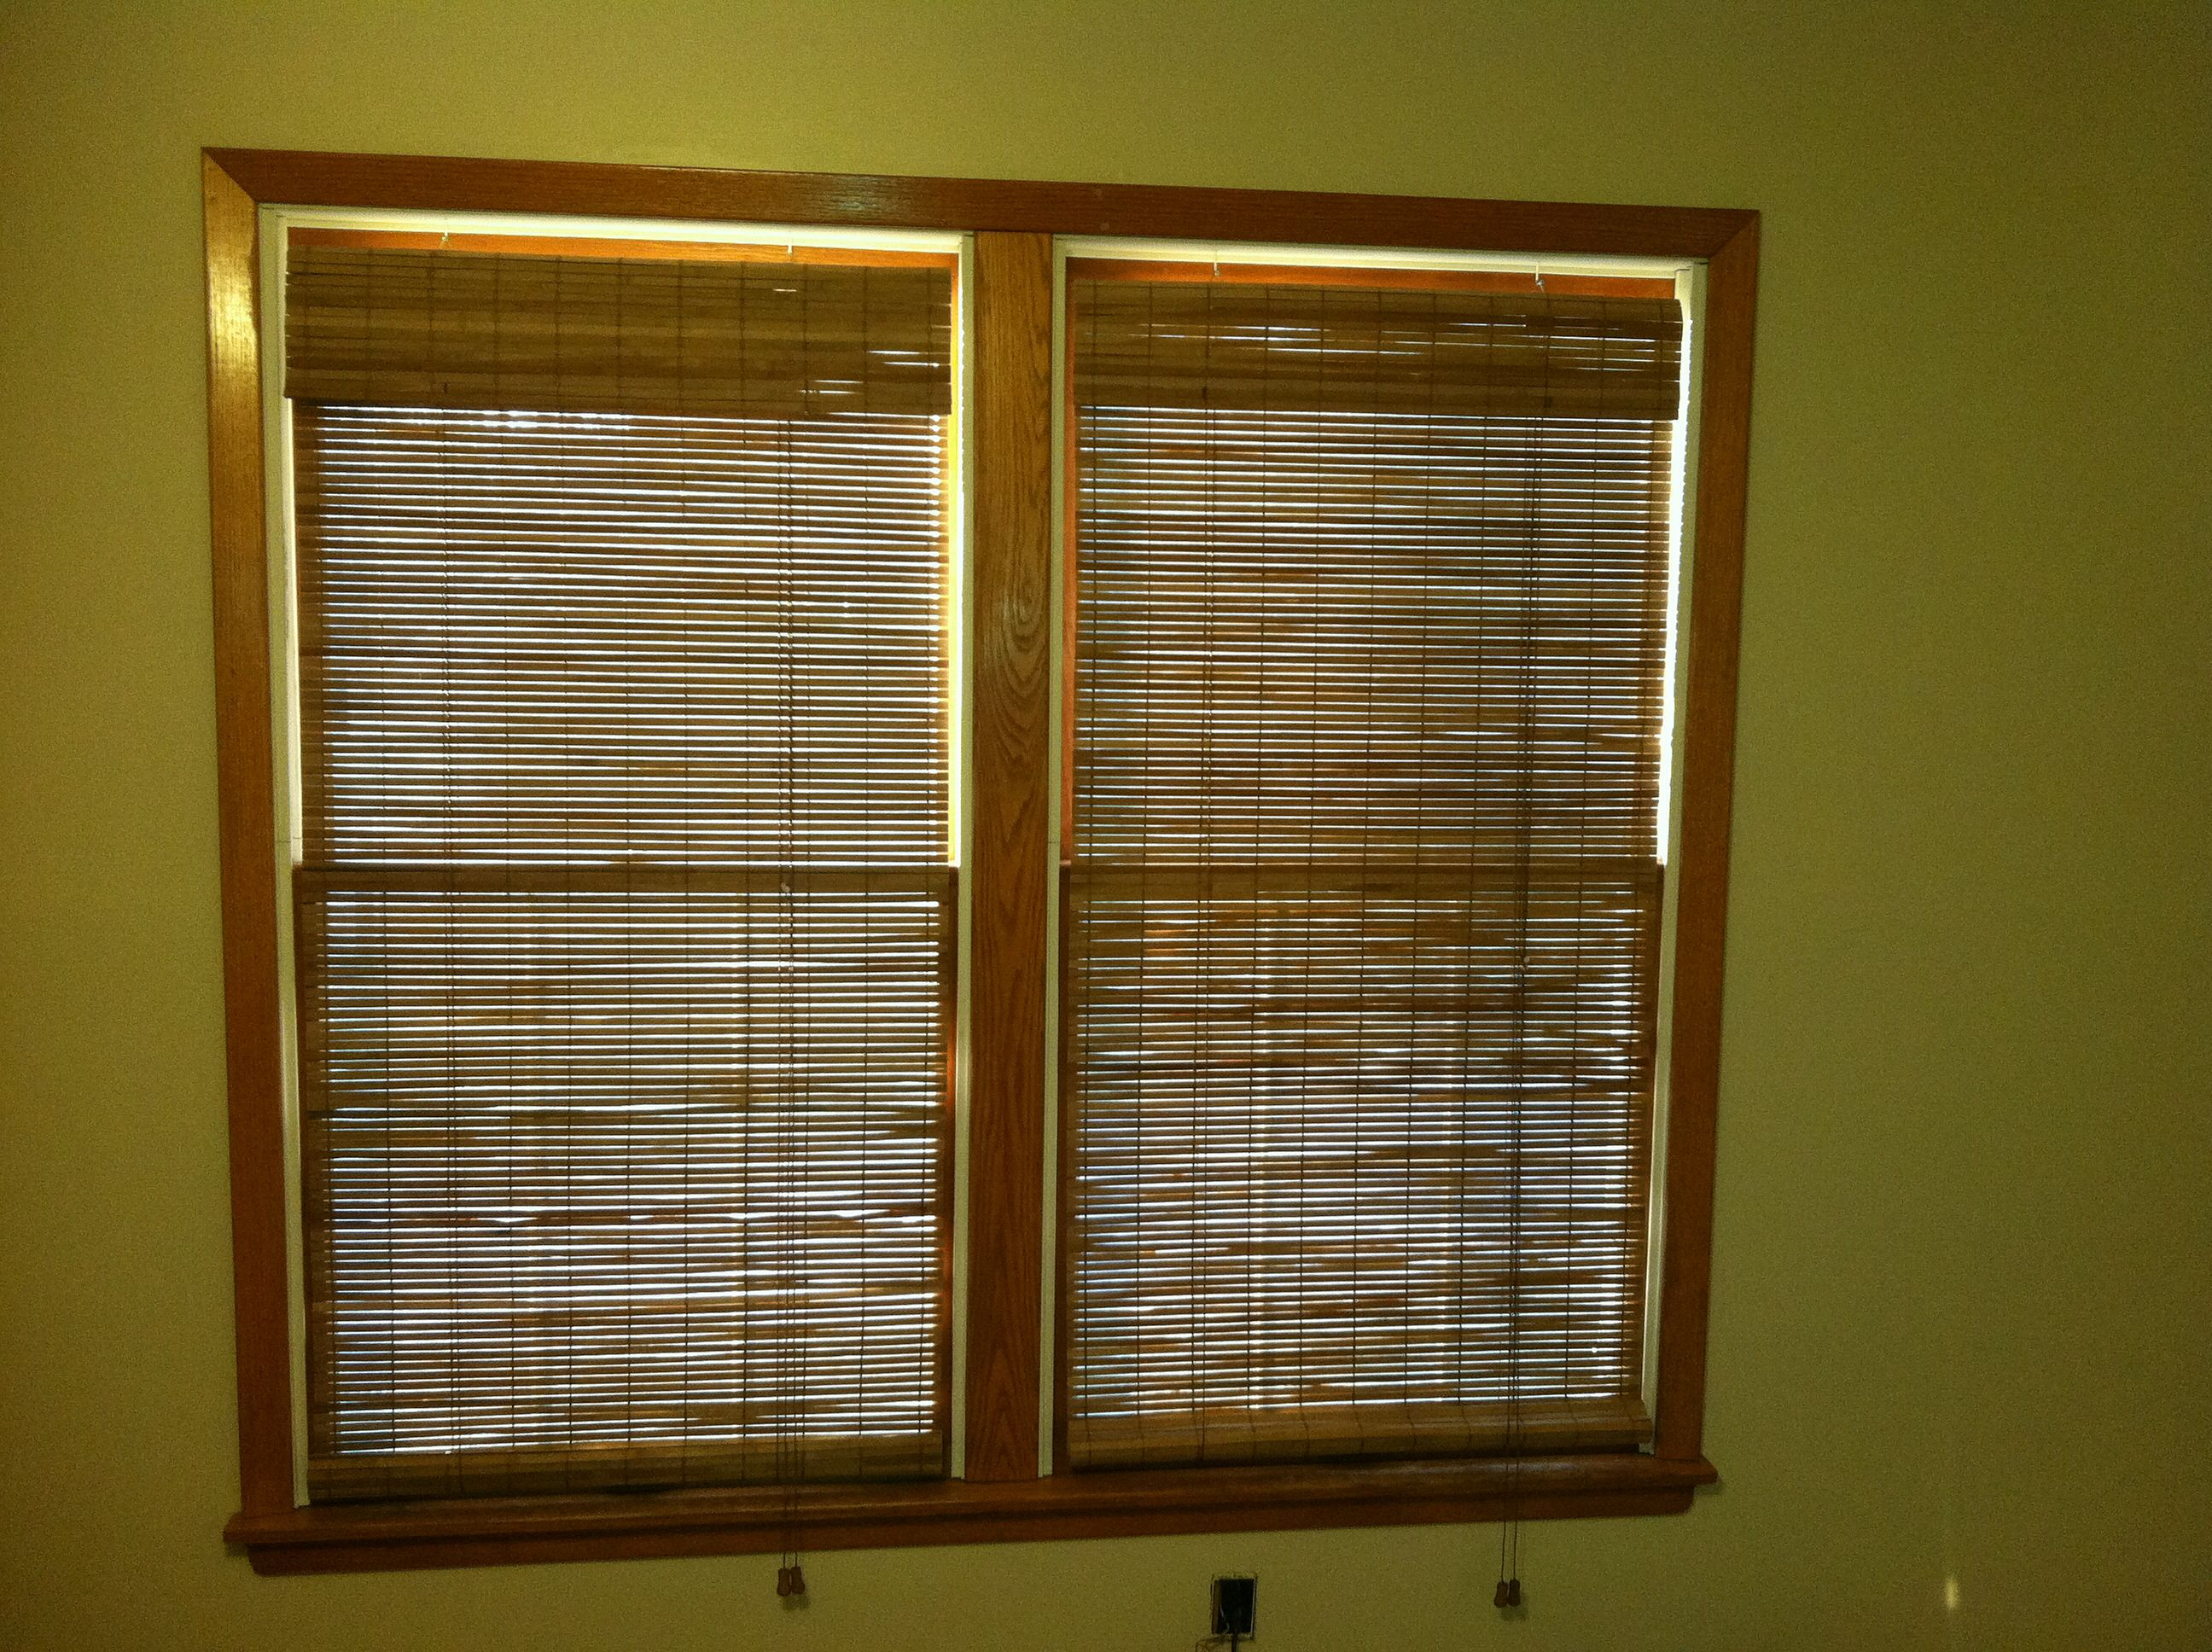 Bamboo blinds from Lowes. Sherwin Williams Kilim Beige